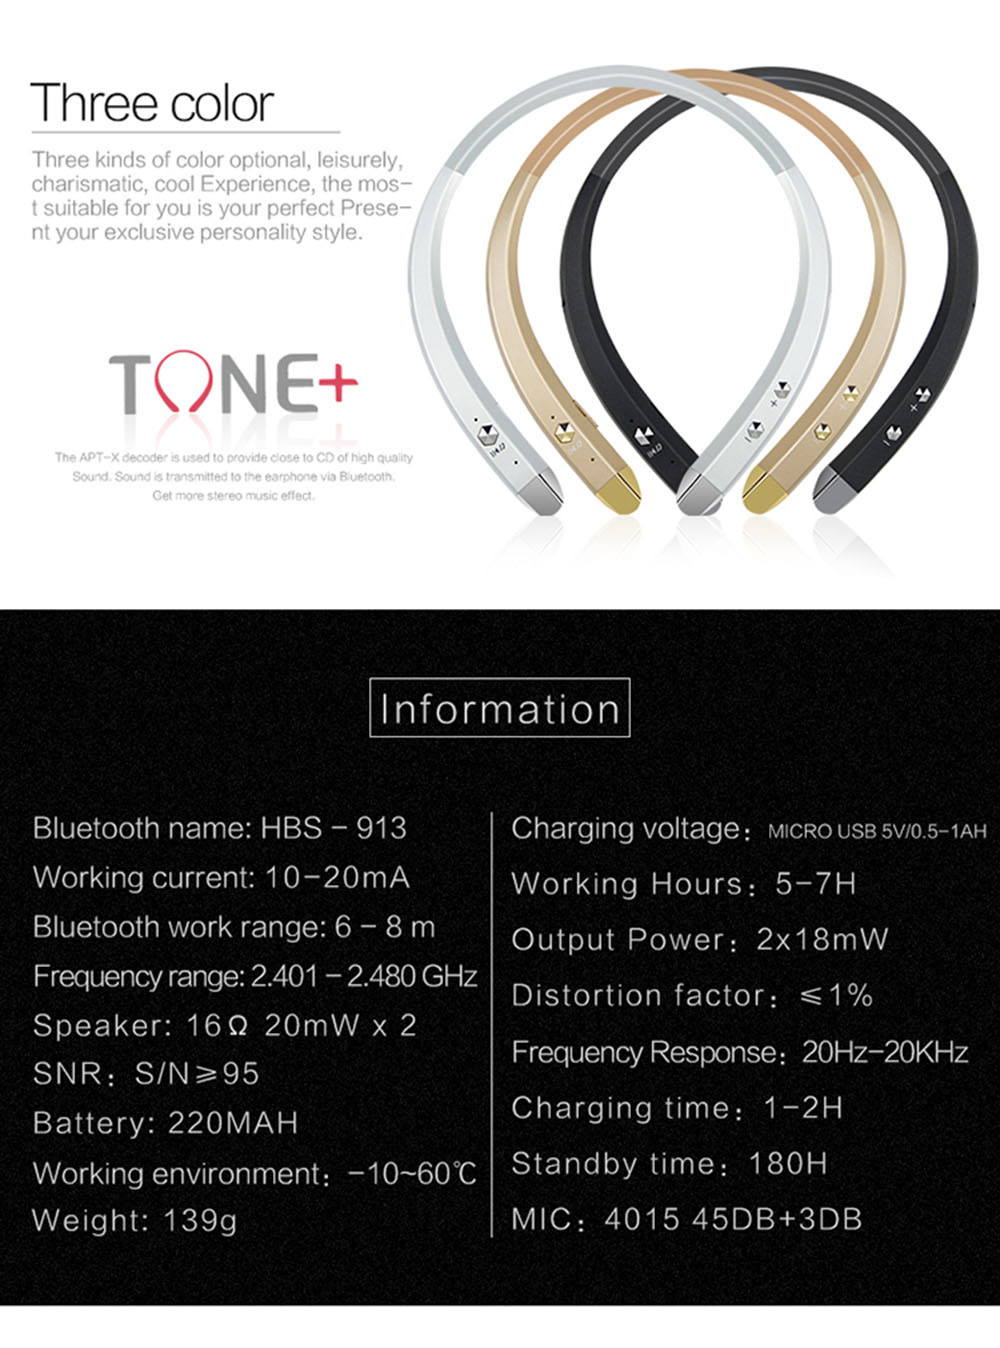 Waterproof Smart Bluetooth 4.0 Headphone Headset Wireless Earphone Sports Music Handsfree Voice Control Earphone #3